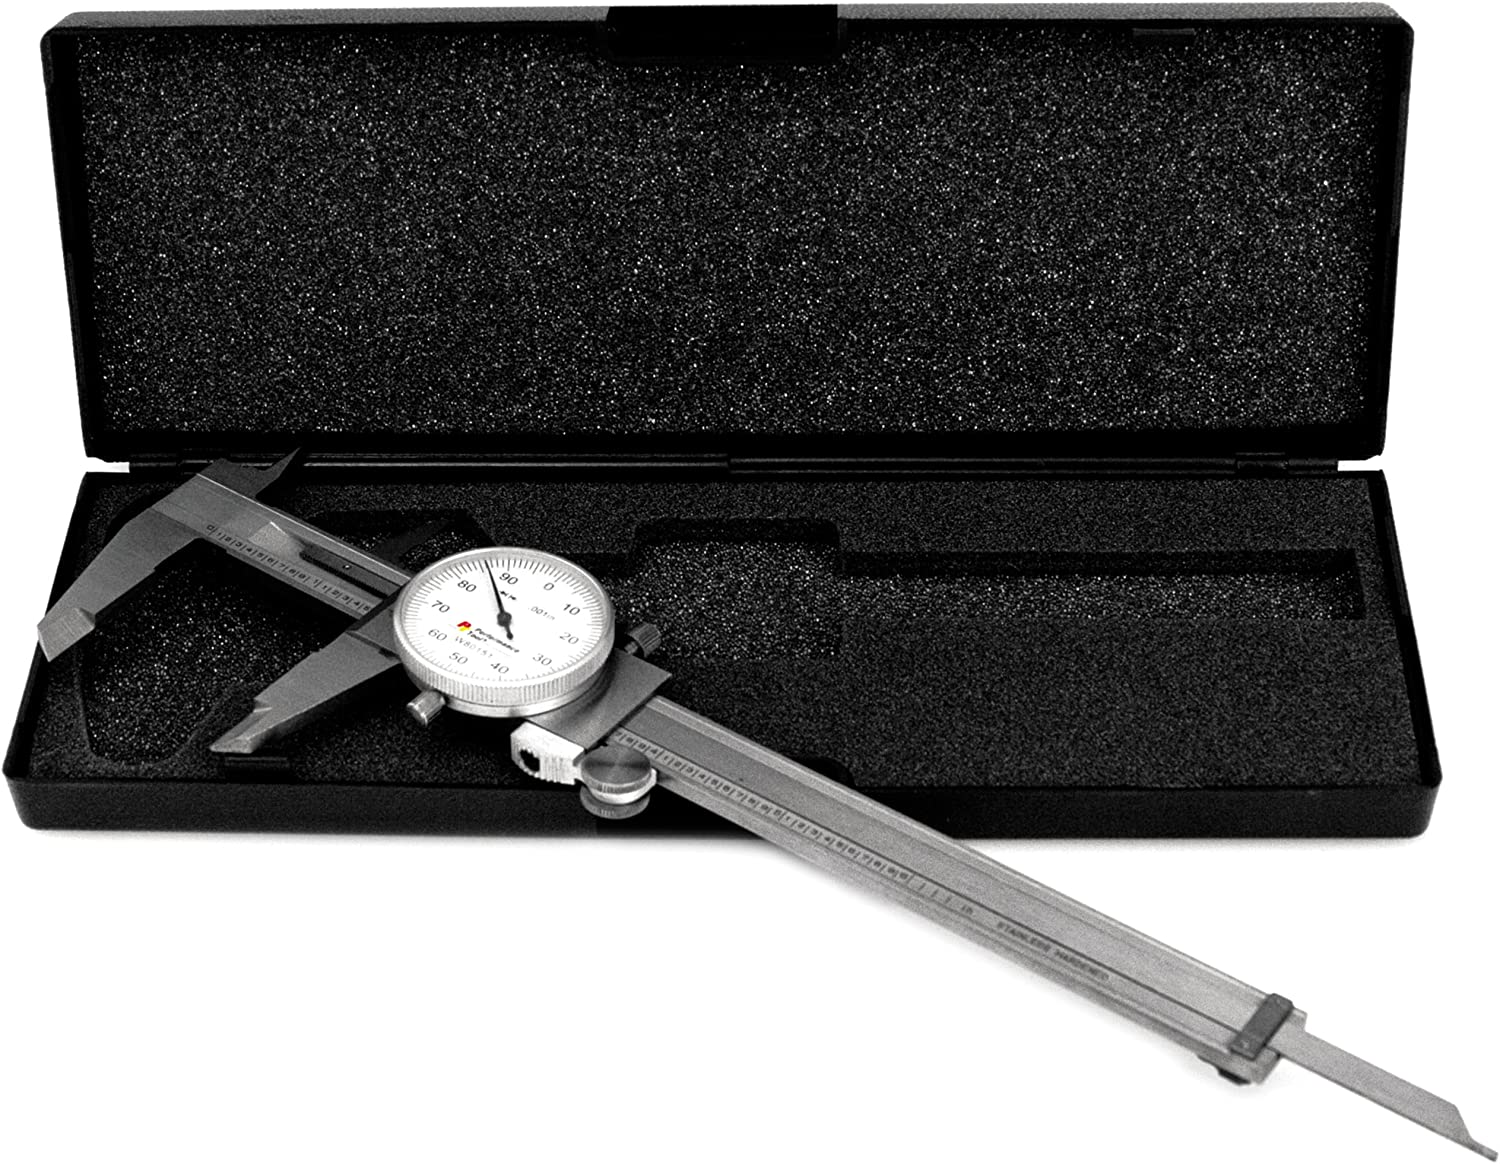 Washington Mall Performance Tool W80151 Stainless Steel Caliper 0-6-Inch Dial Surprise price